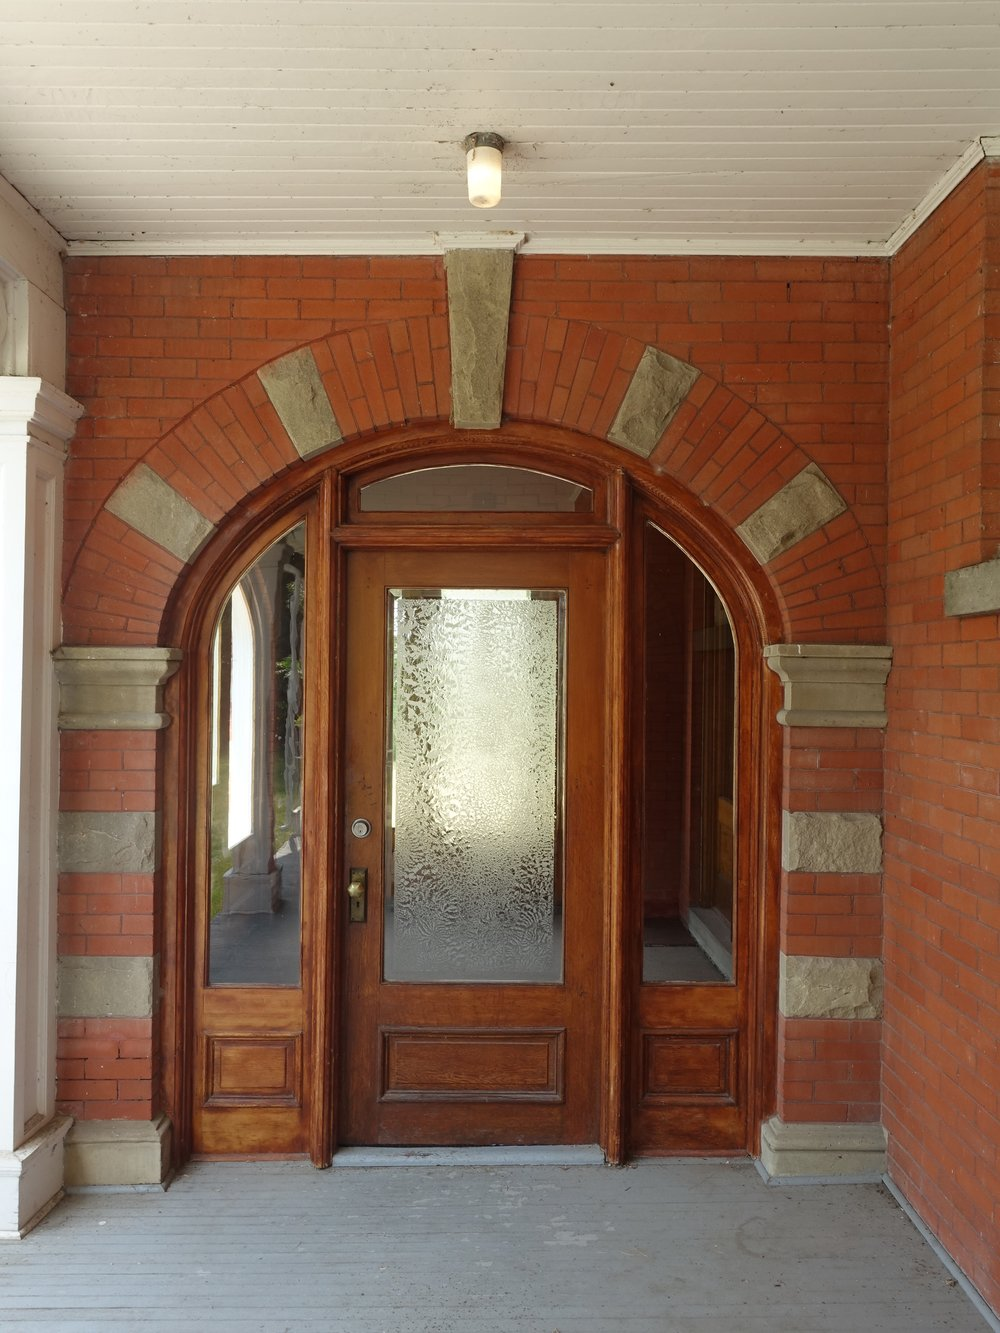 The front porch helps to create a welcoming entrance.